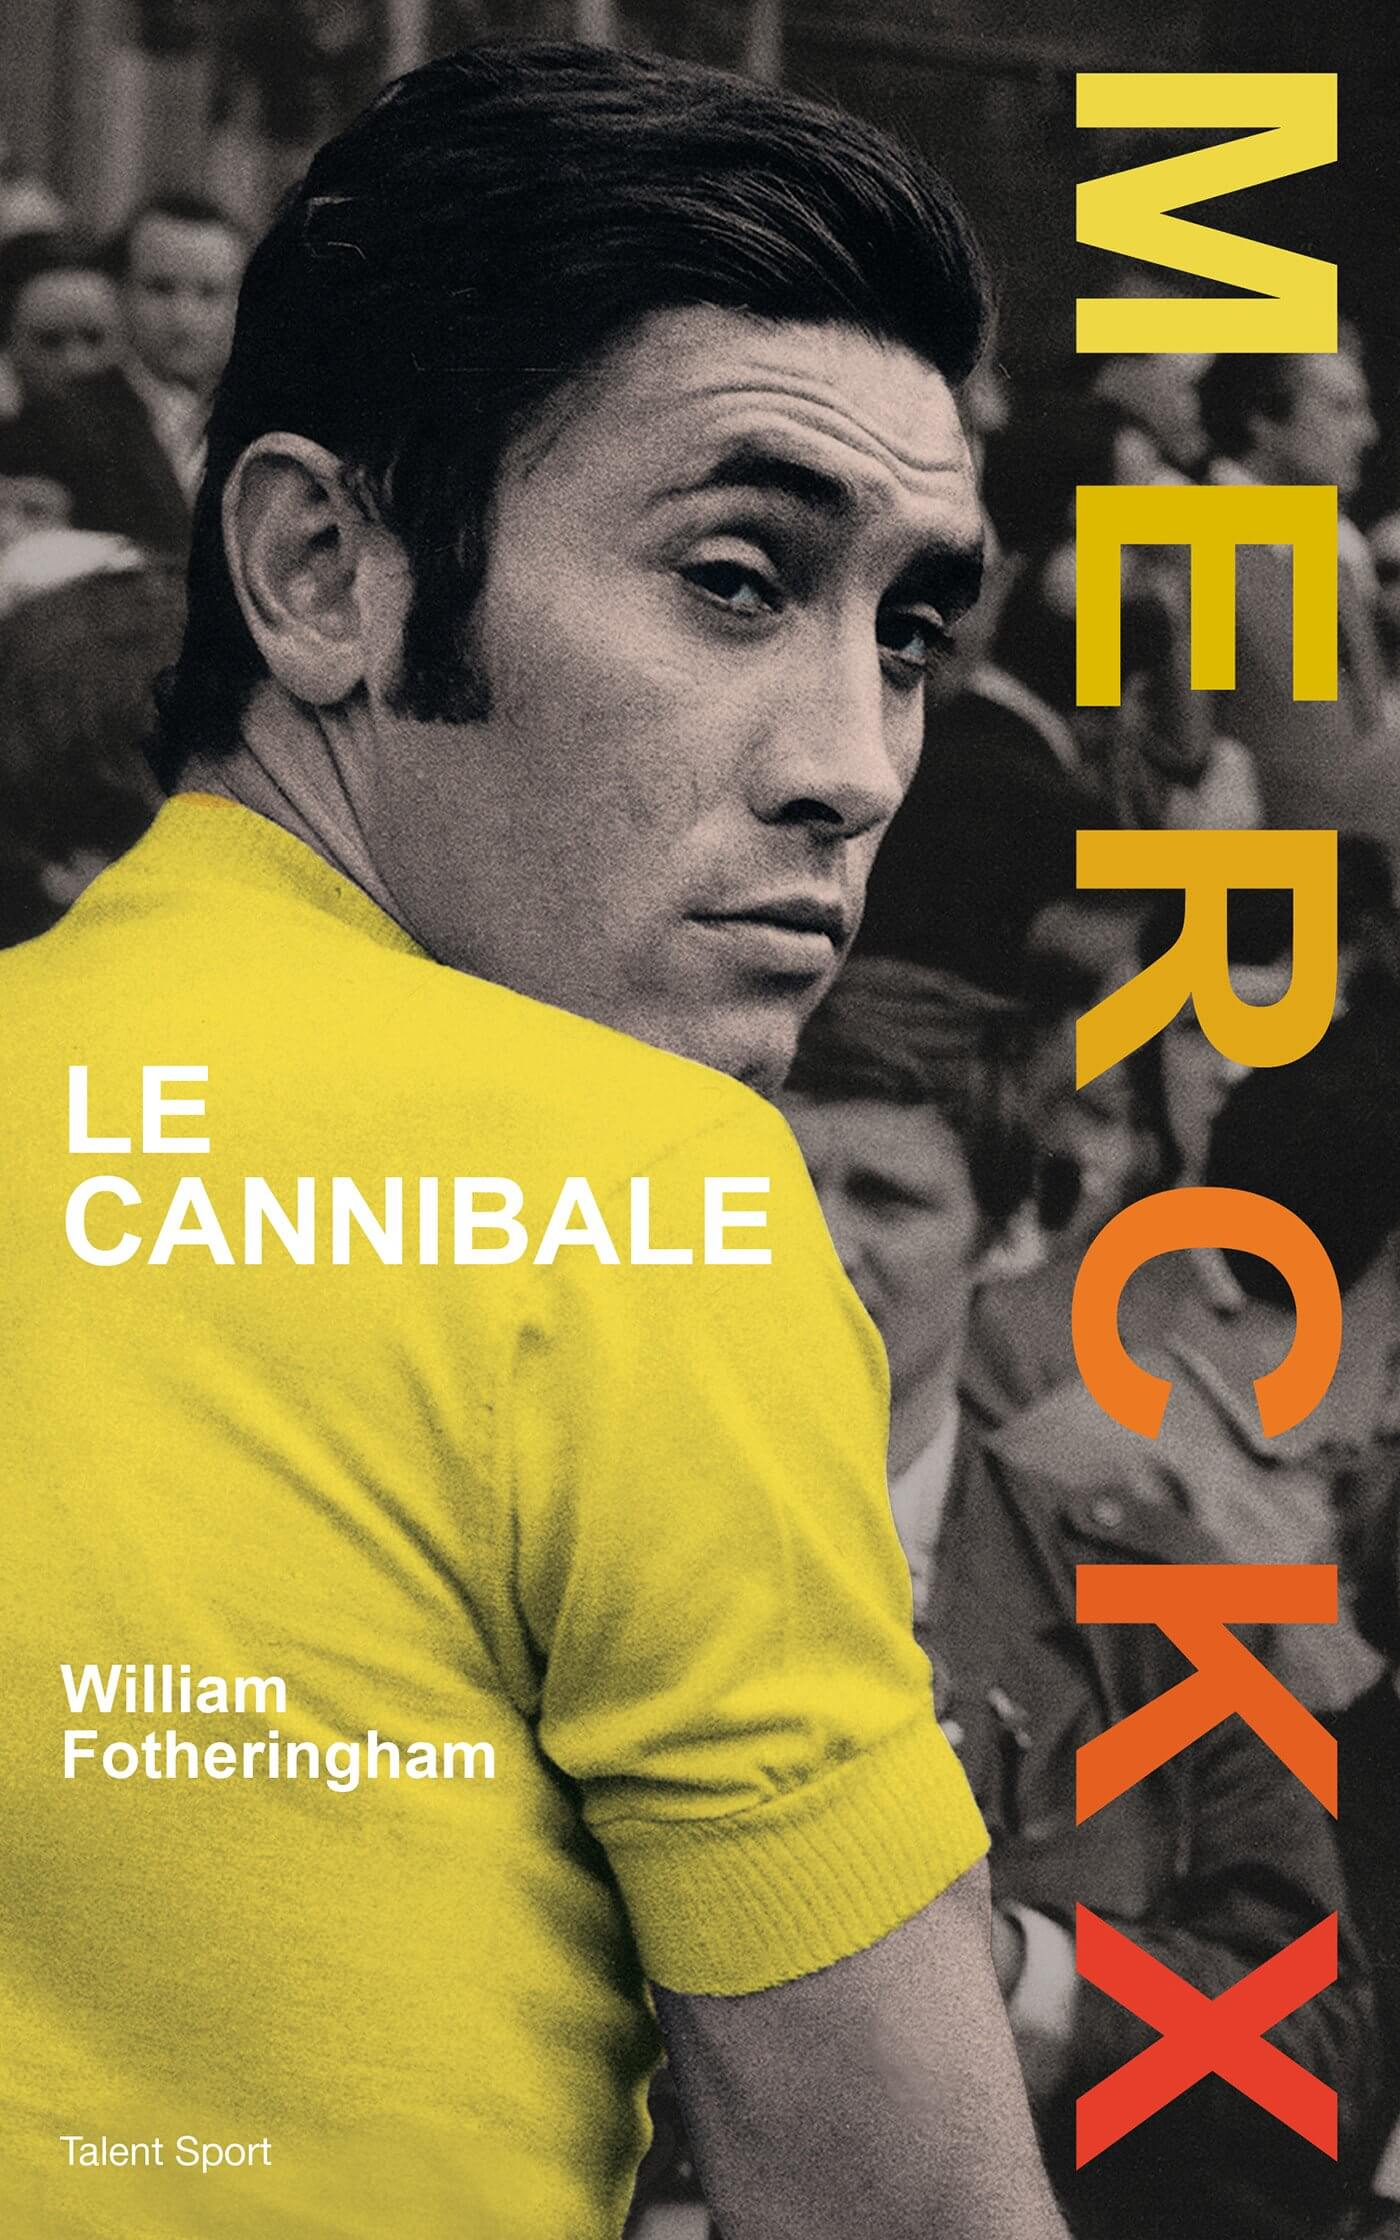 Eddy Merckx, le Cannibale : Une Biographie Signée William Fotheringham